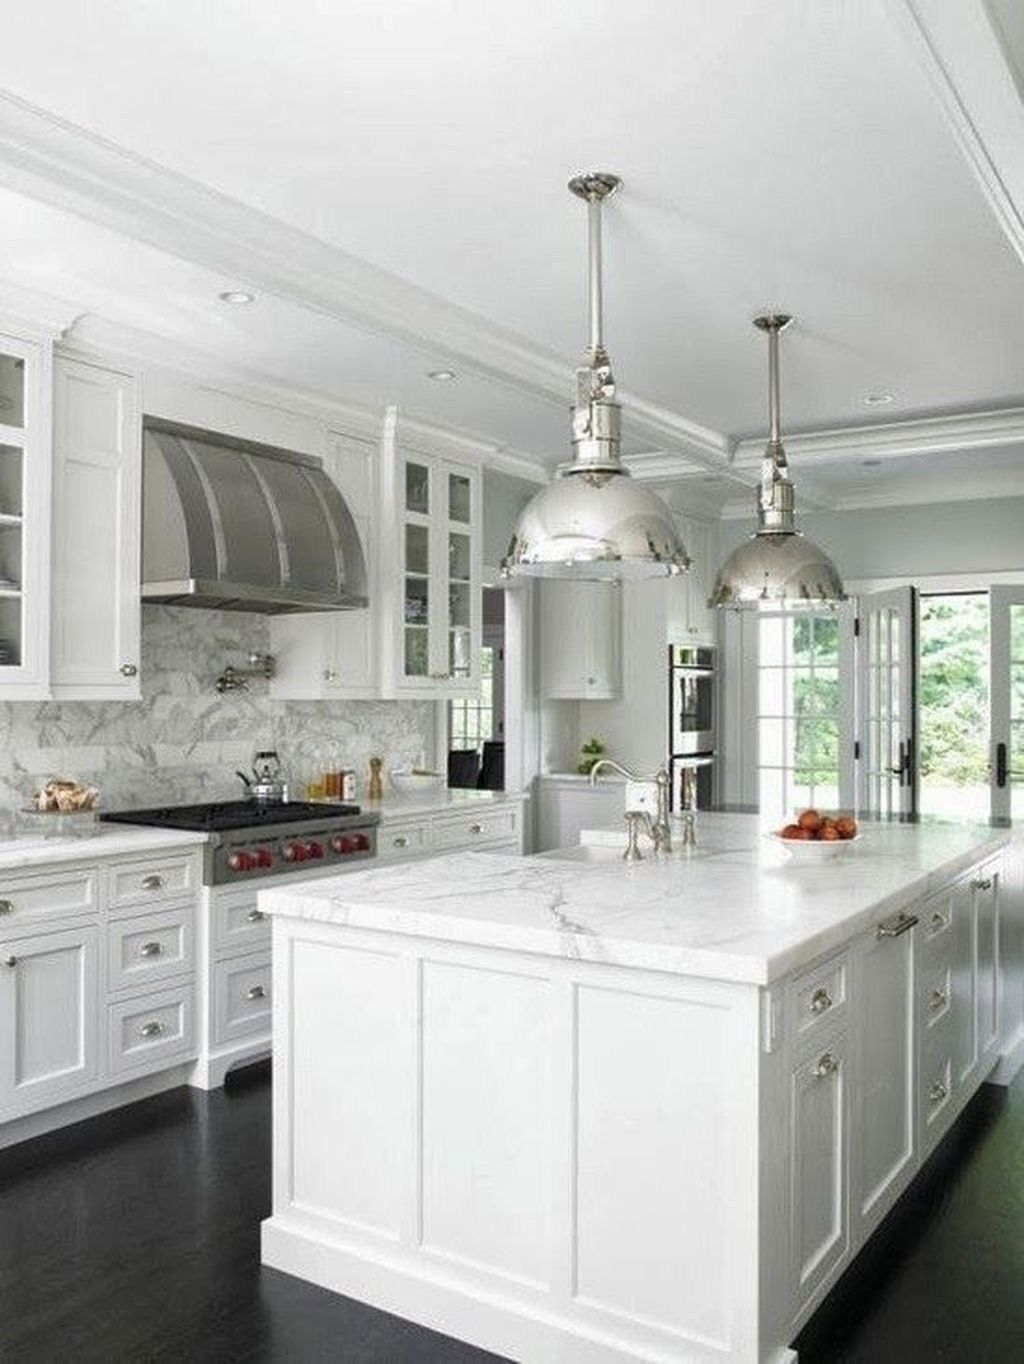 46 Luxury White Kitchen Design Ideas To Get Elegant Look Kitchen